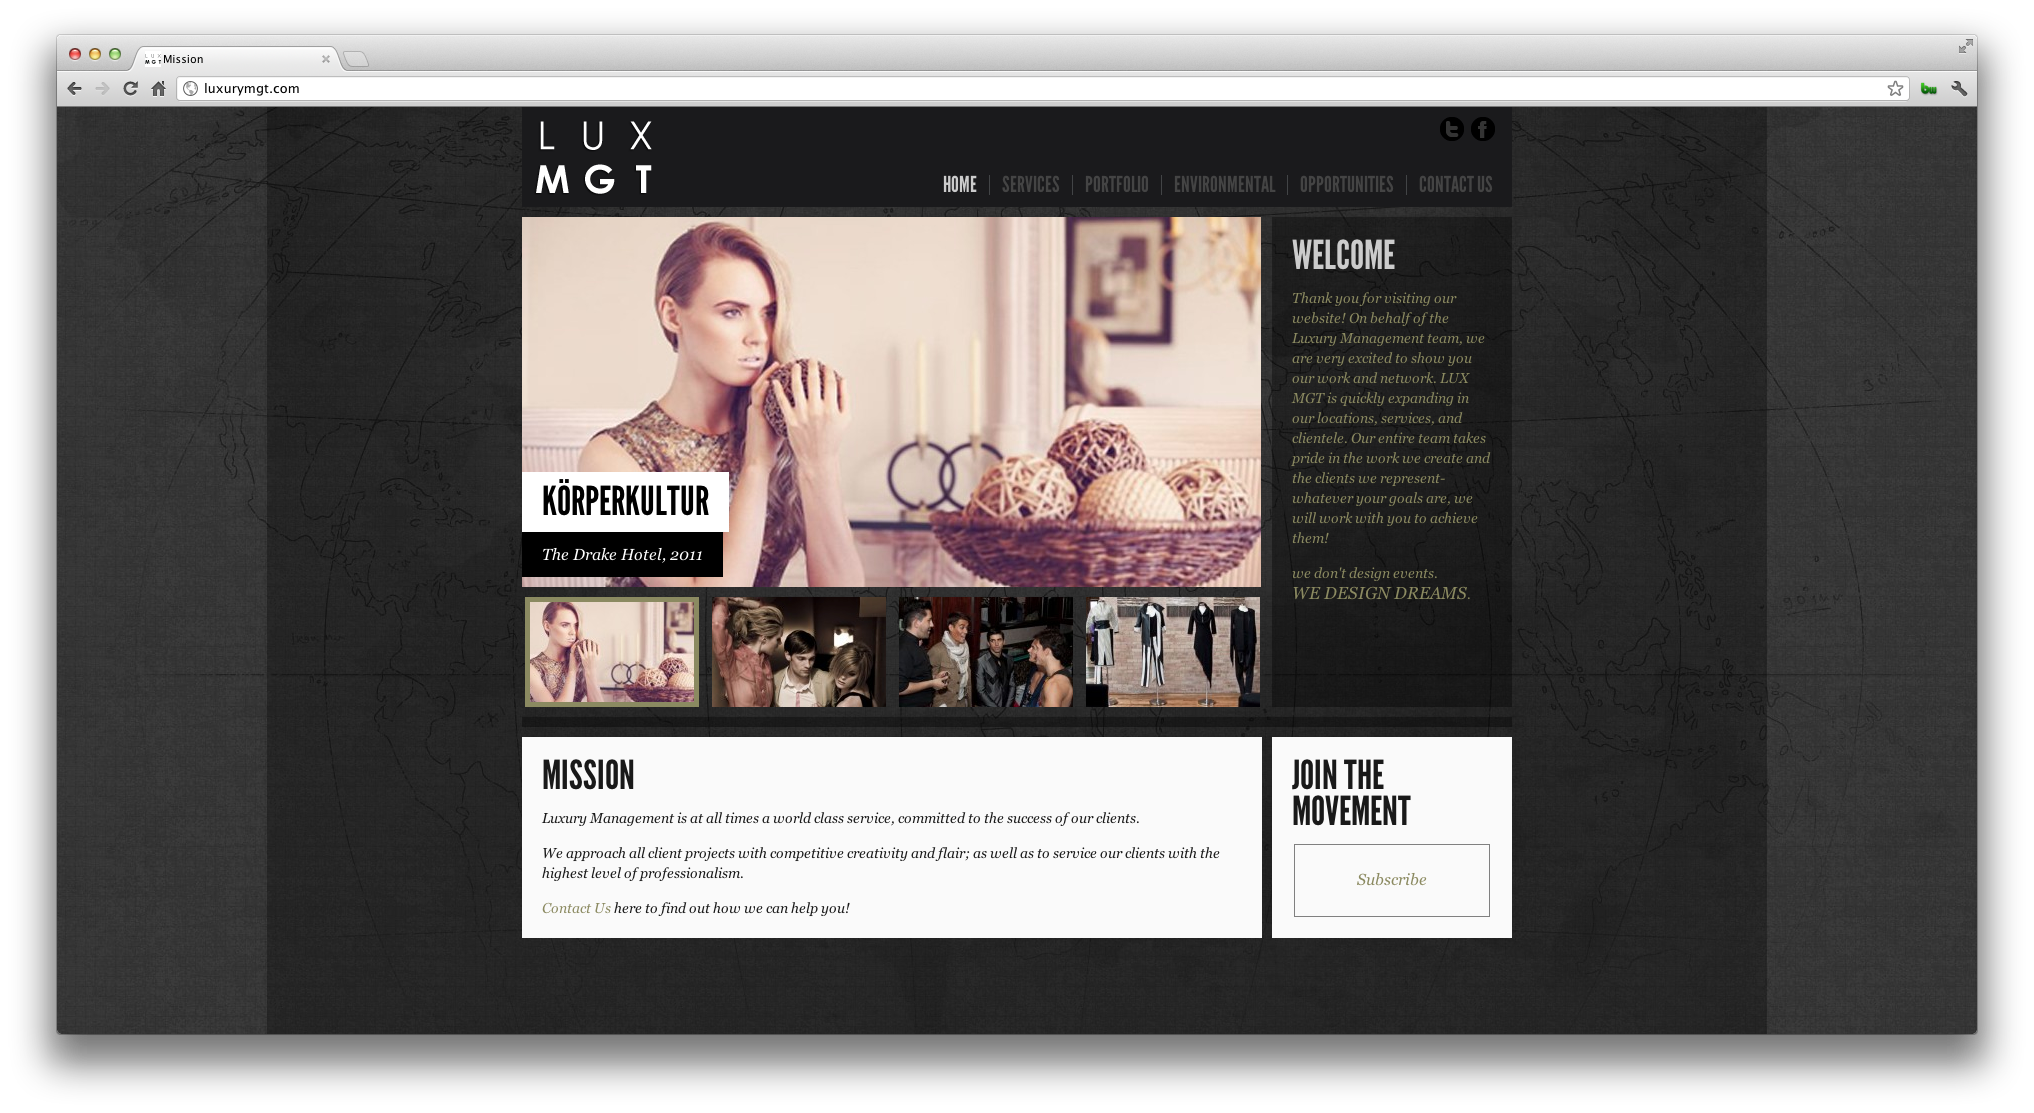 LUX MGT Website